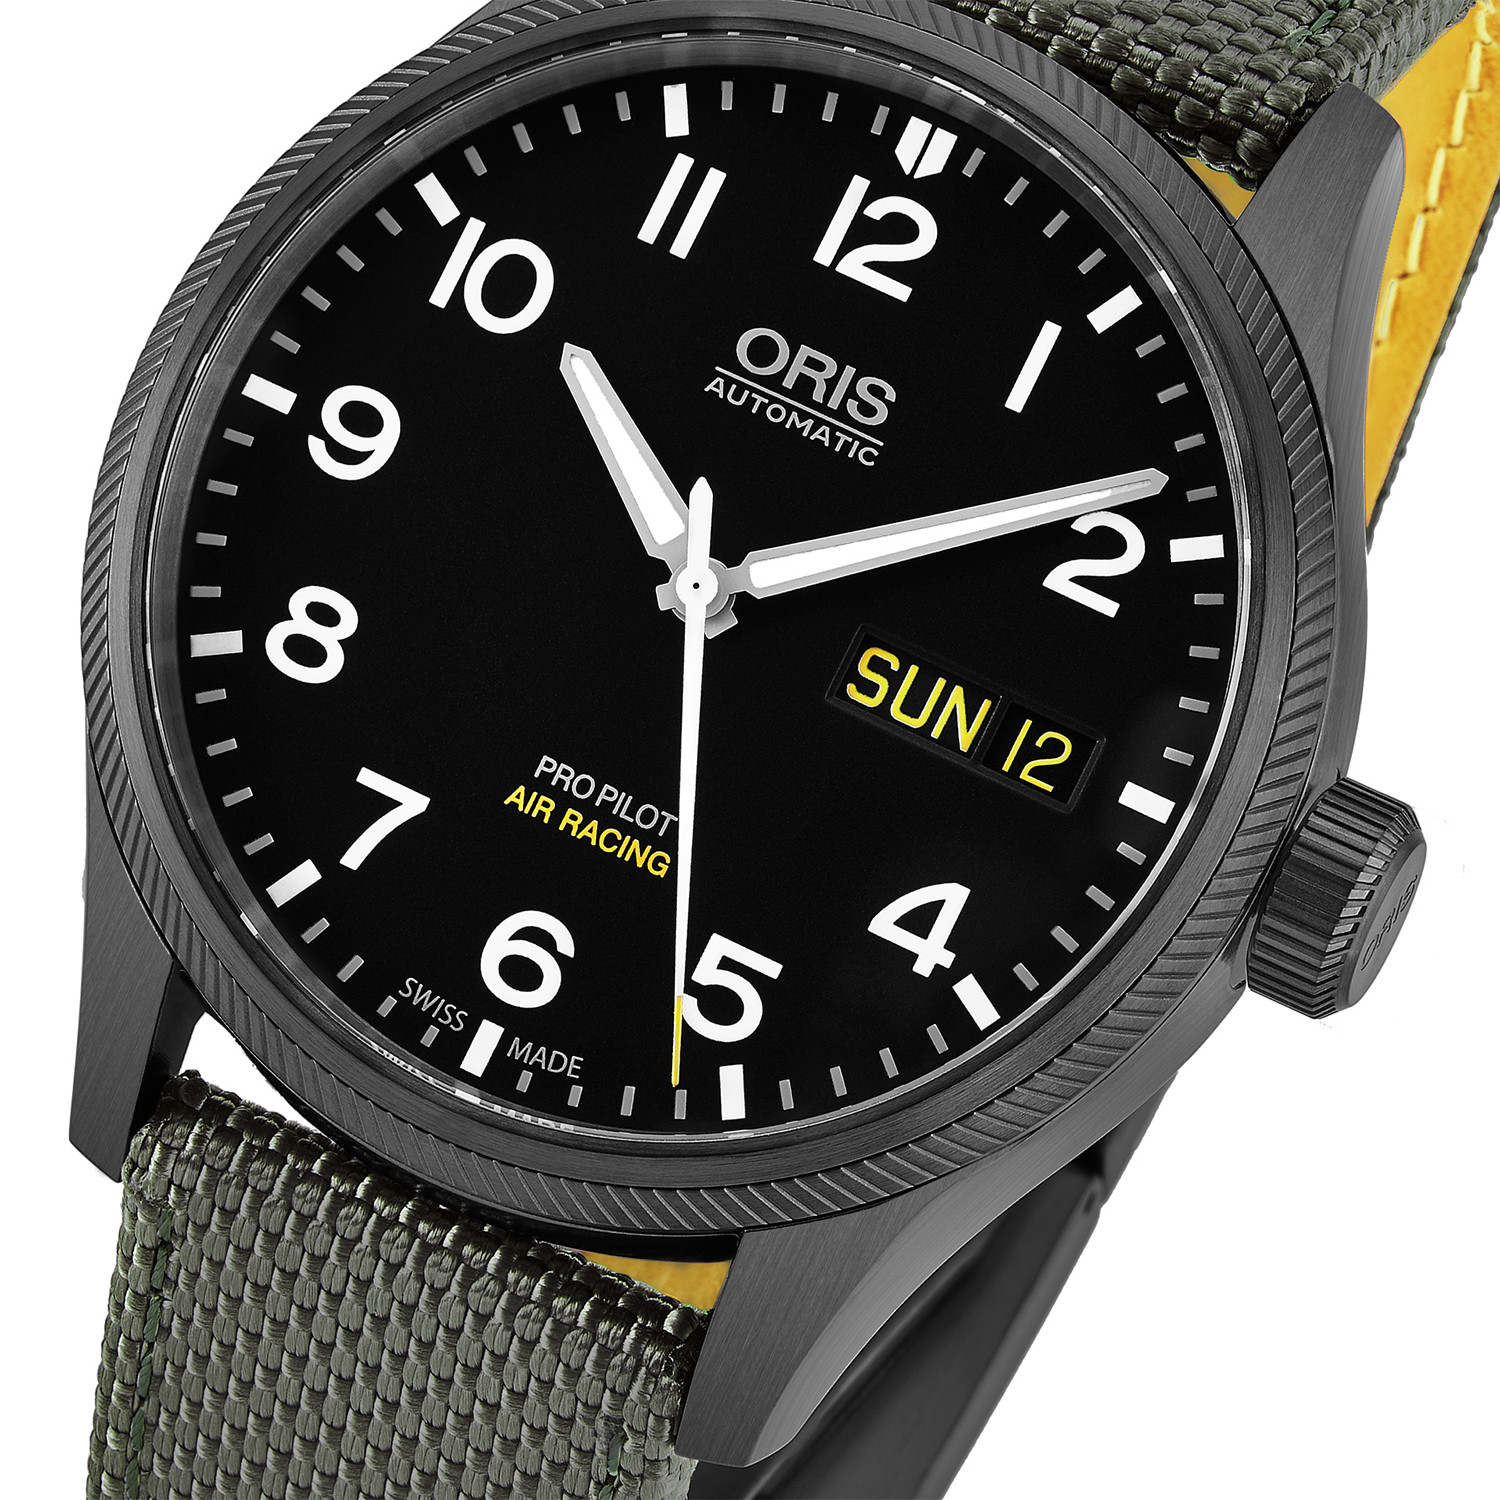 Pilot Vi Home: Oris ProPilot Air Racing Automatic // 75276984284SET